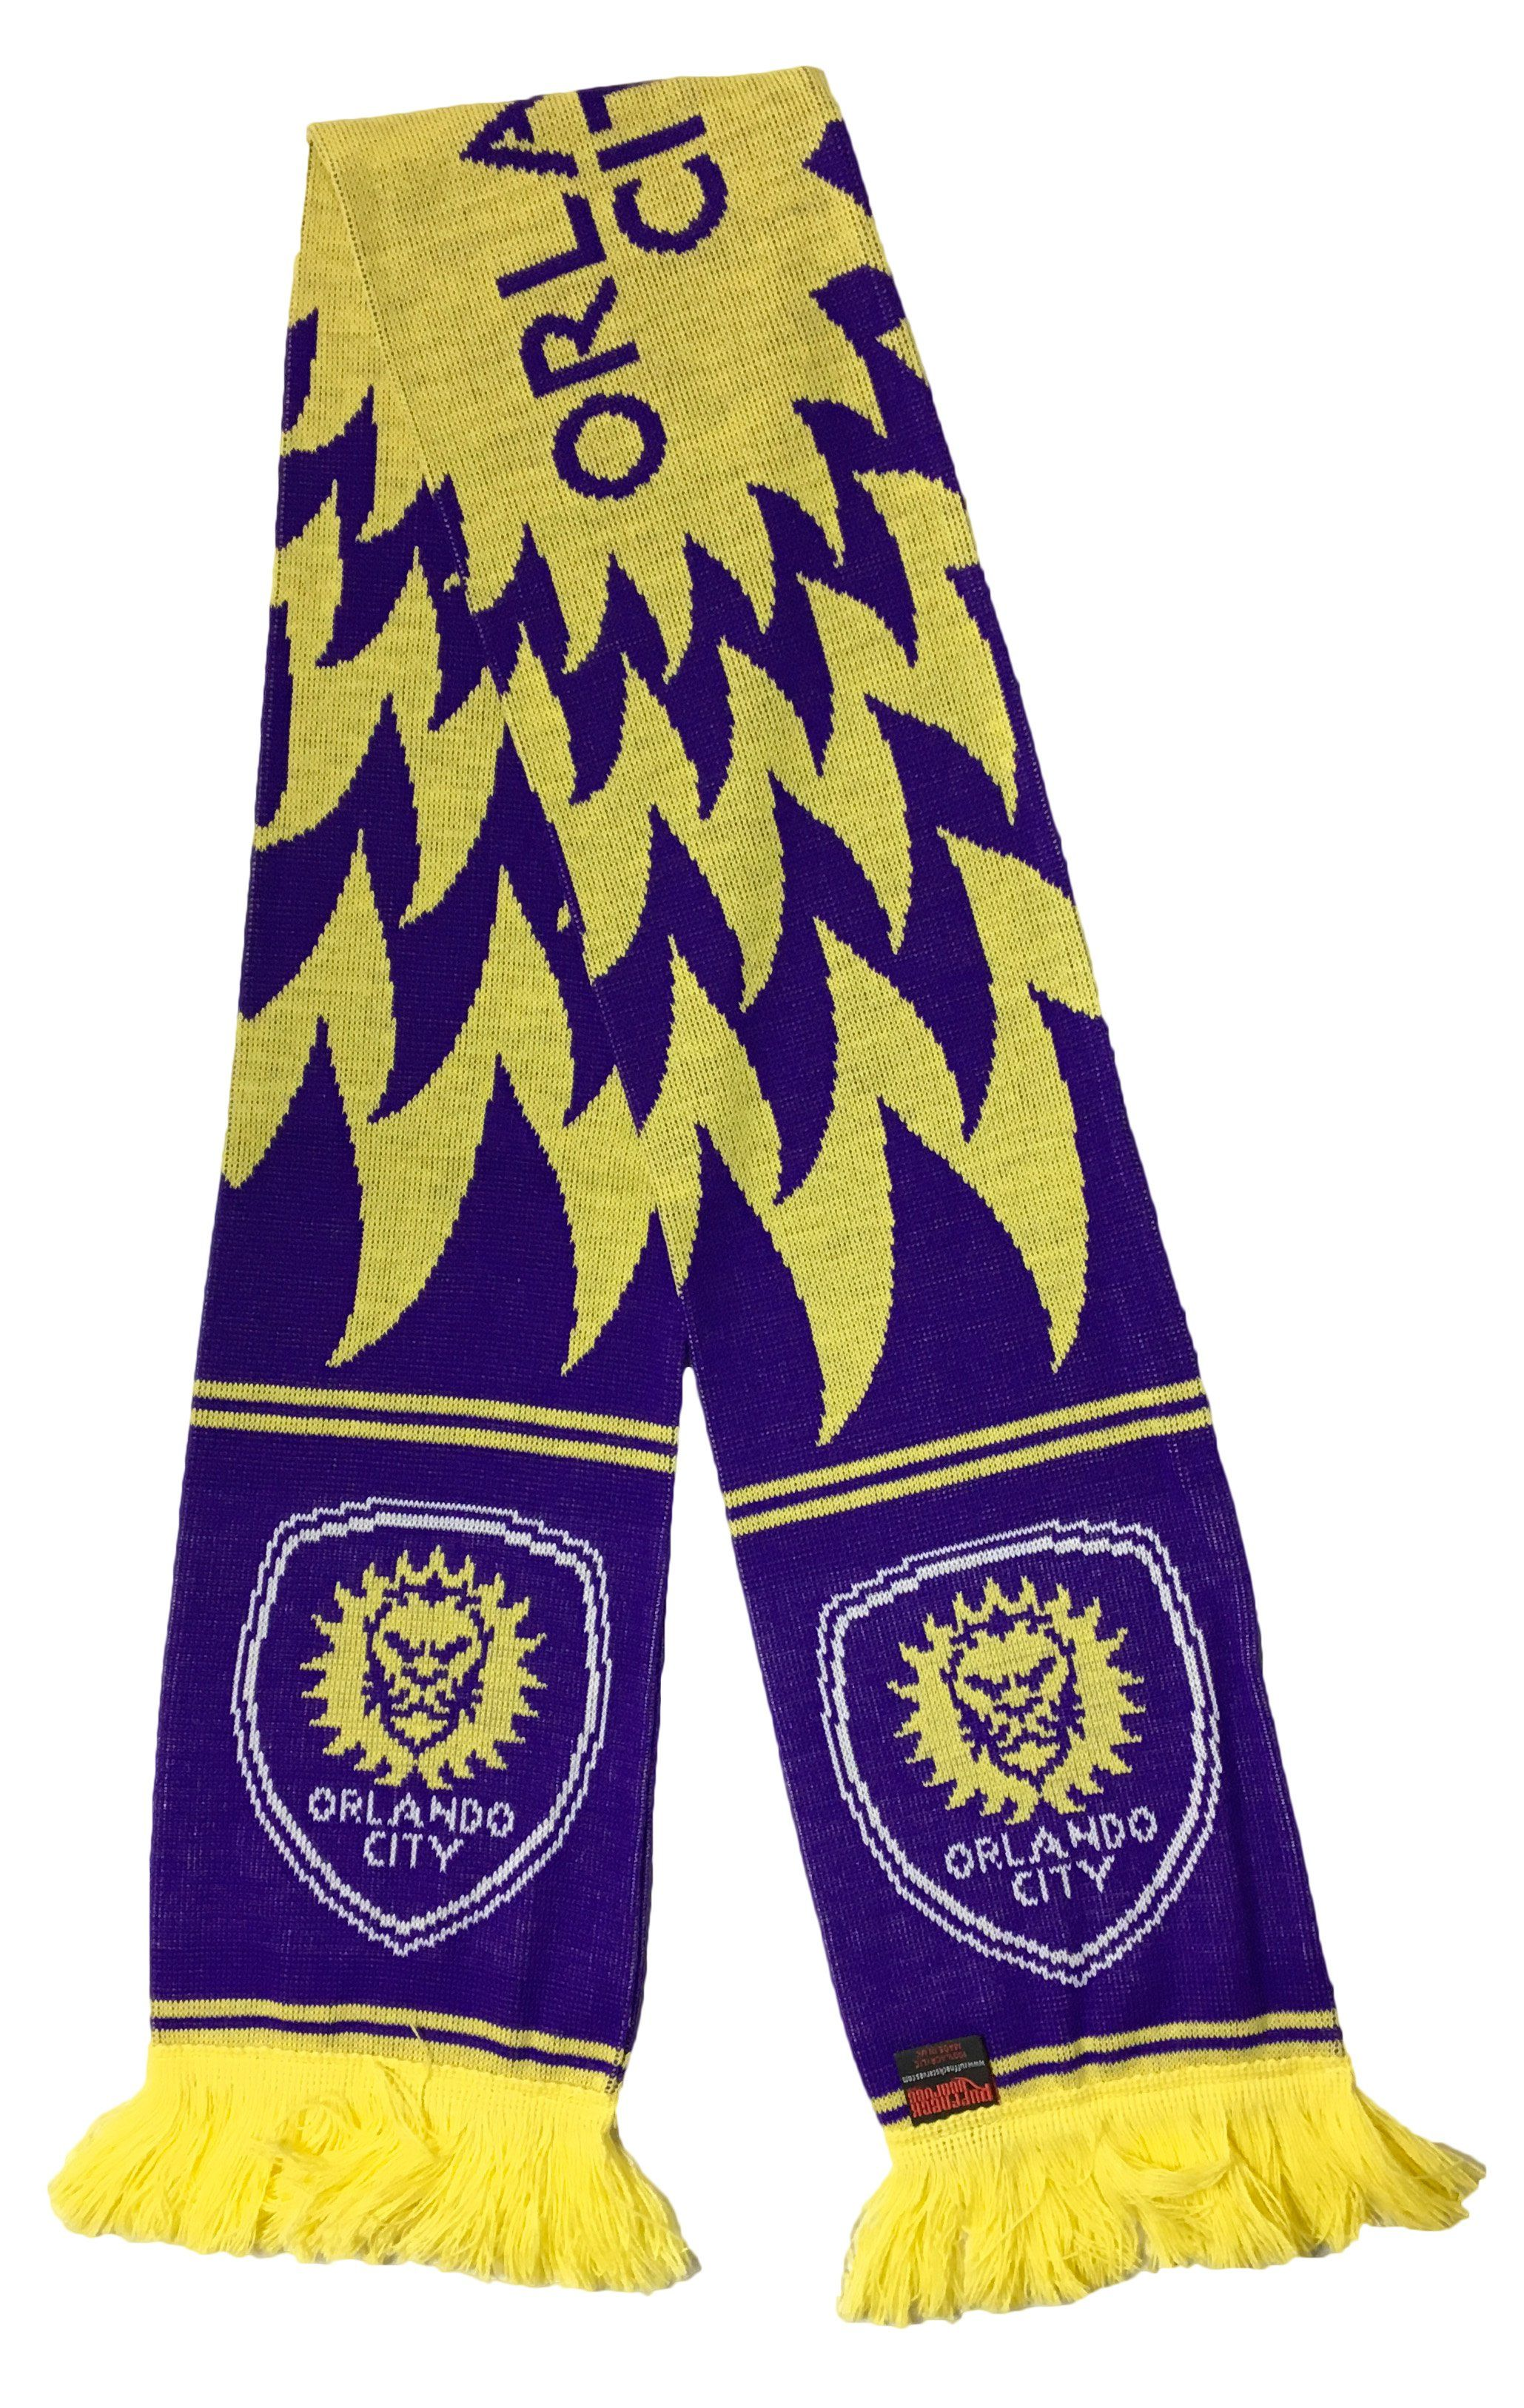 ORLANDO CITY SCARF - Lion's Mane